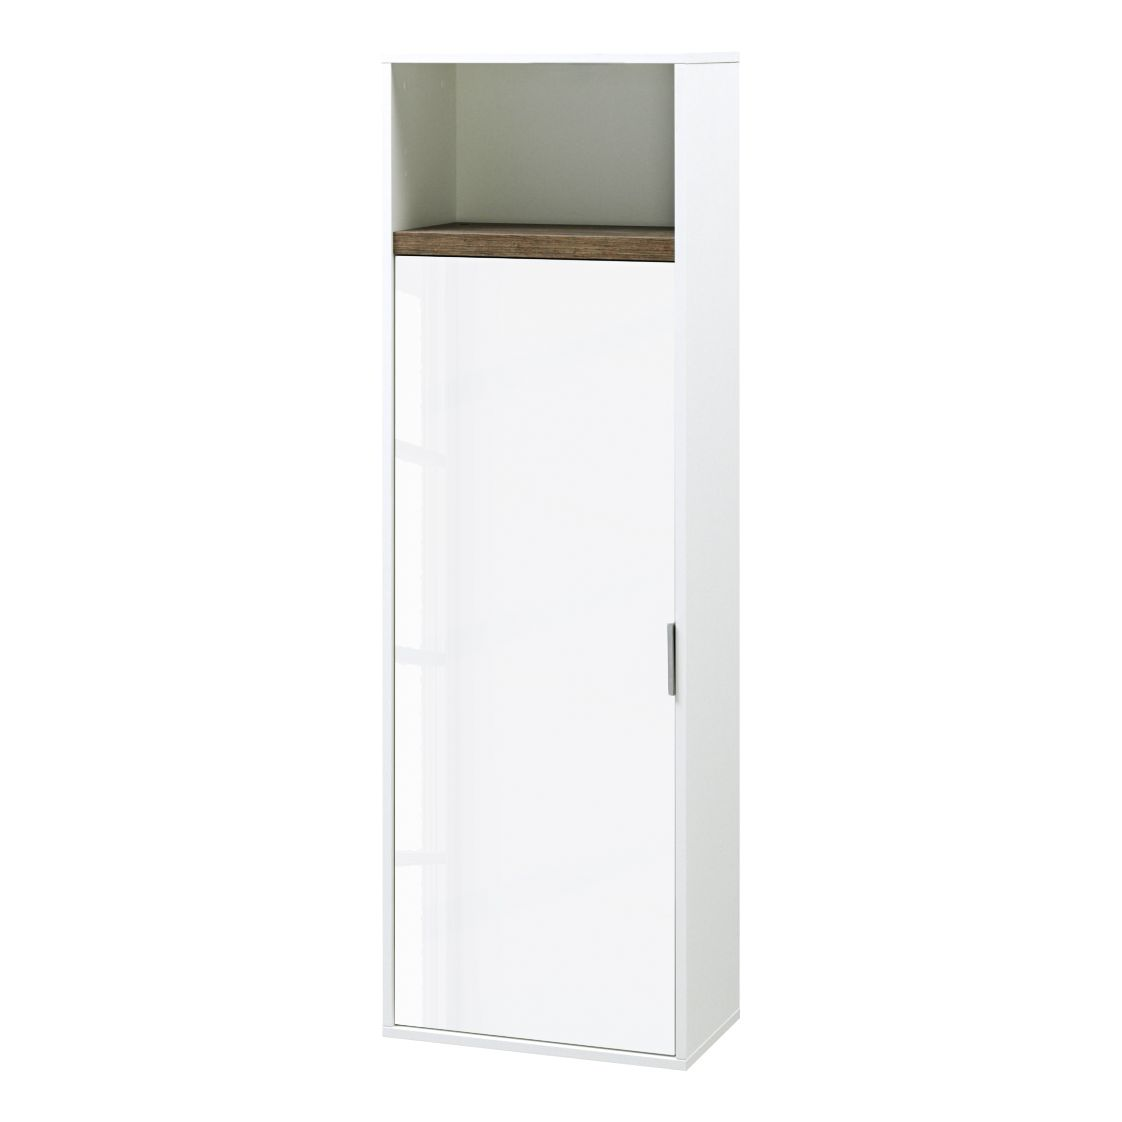 Armoire suspendue My Ell - Blanc brillant / Imitation chêne de Stirling, Cs Schmal